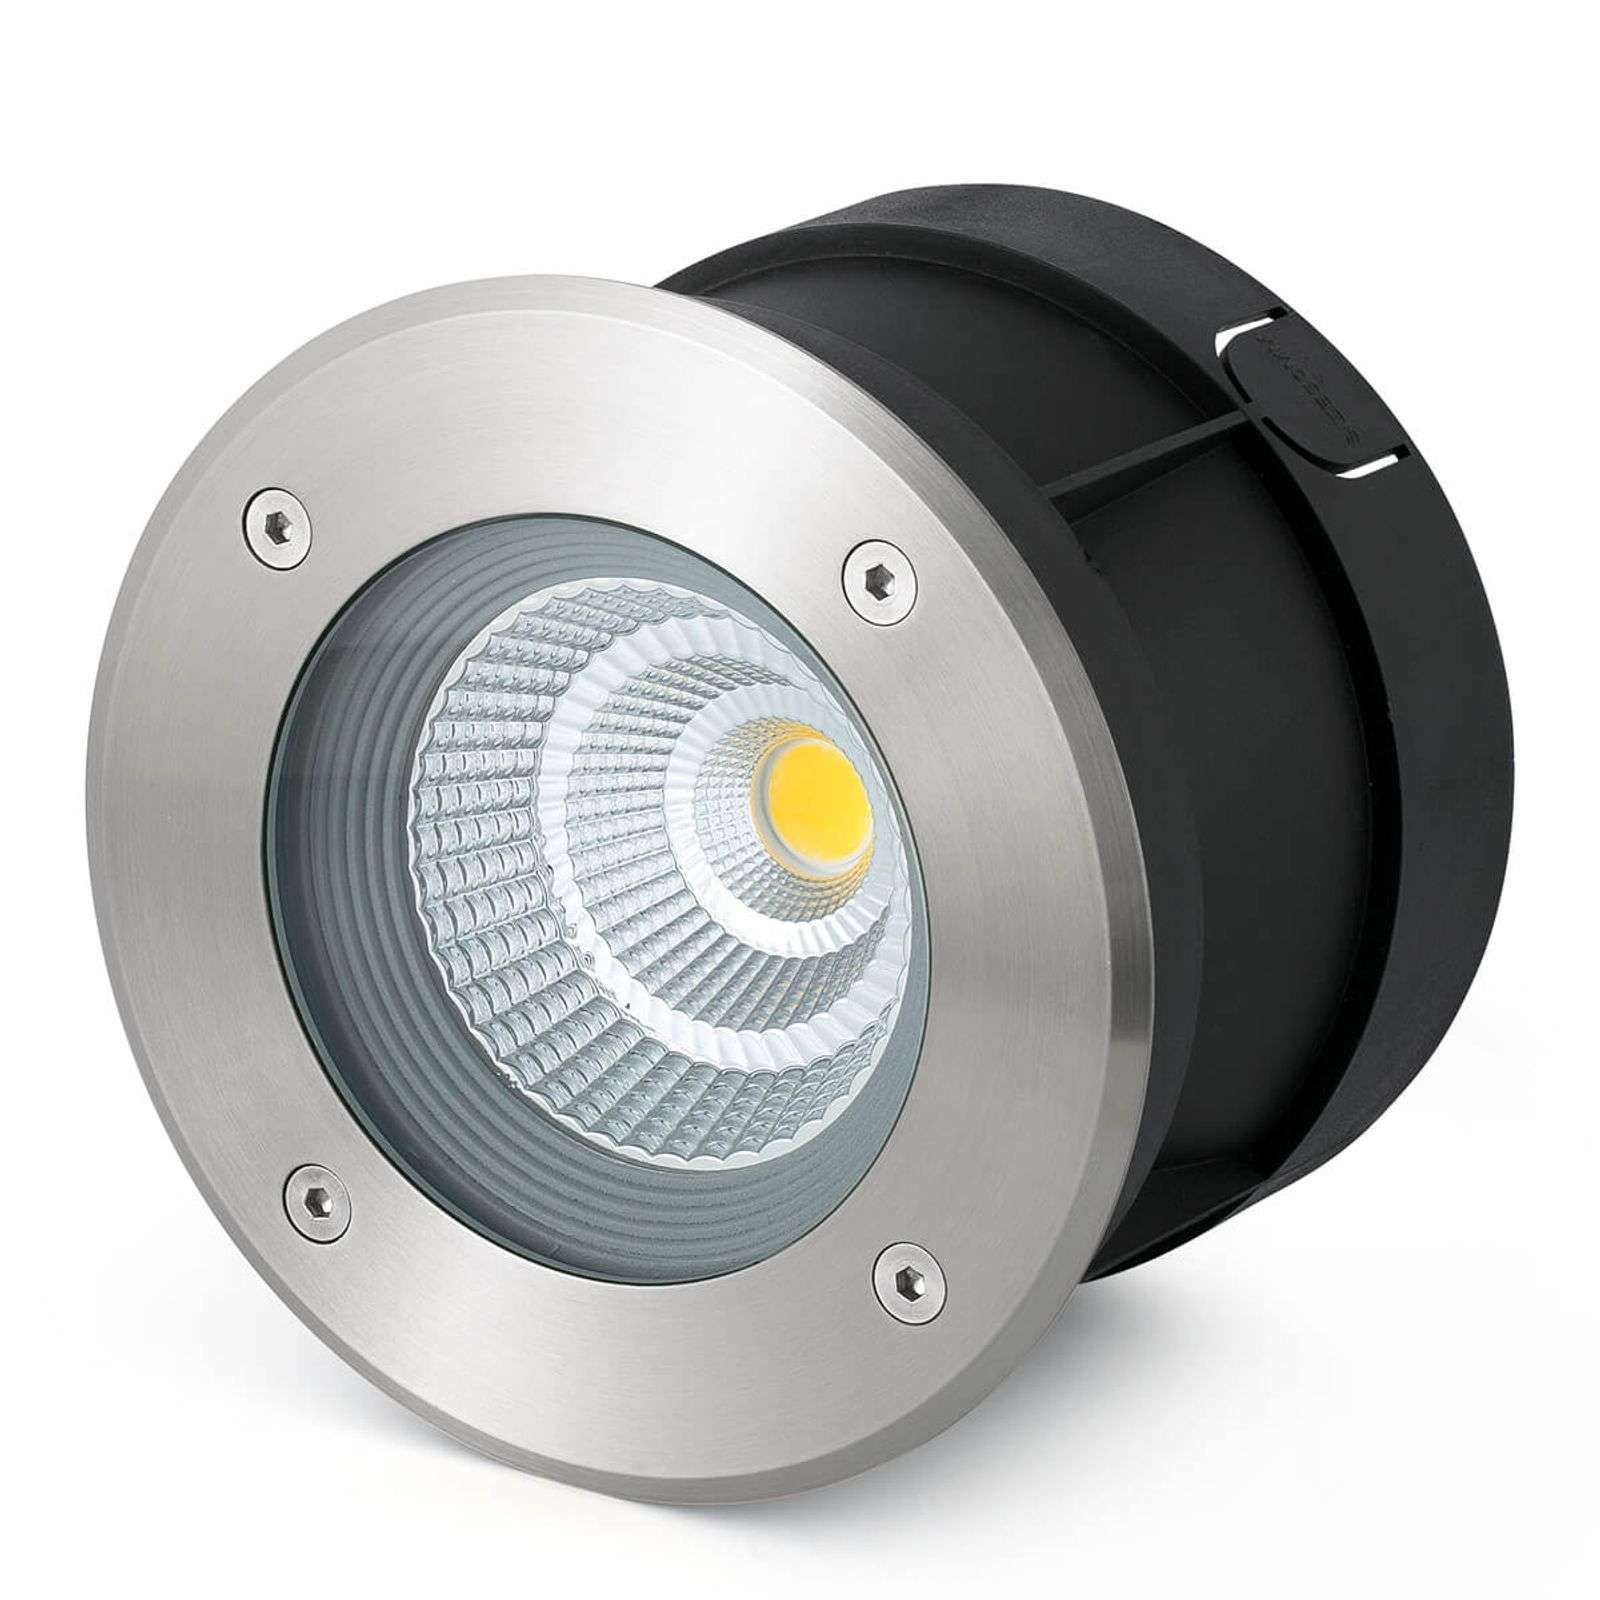 Spot Encastrable Dans Le Sol Led Suria 12 Ip67 In 2020 Led Led Lamp Lampen24